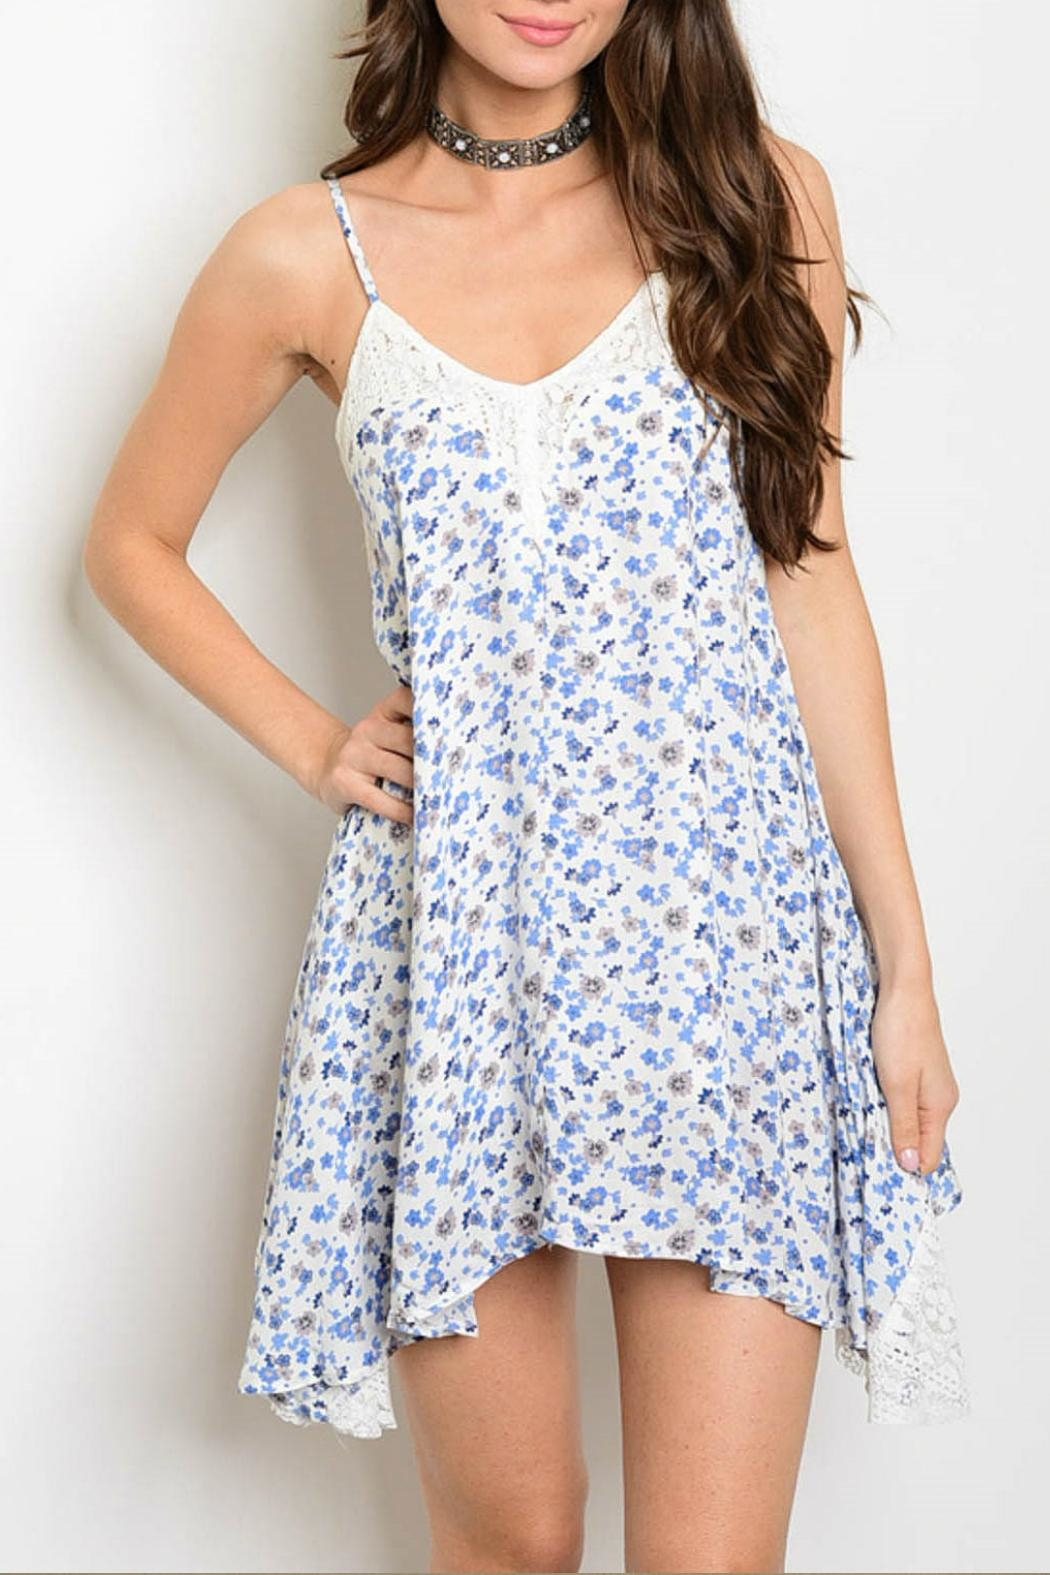 Chlah Blue Floral Dress From Tampa By The Trunk Stylists Shoptiques